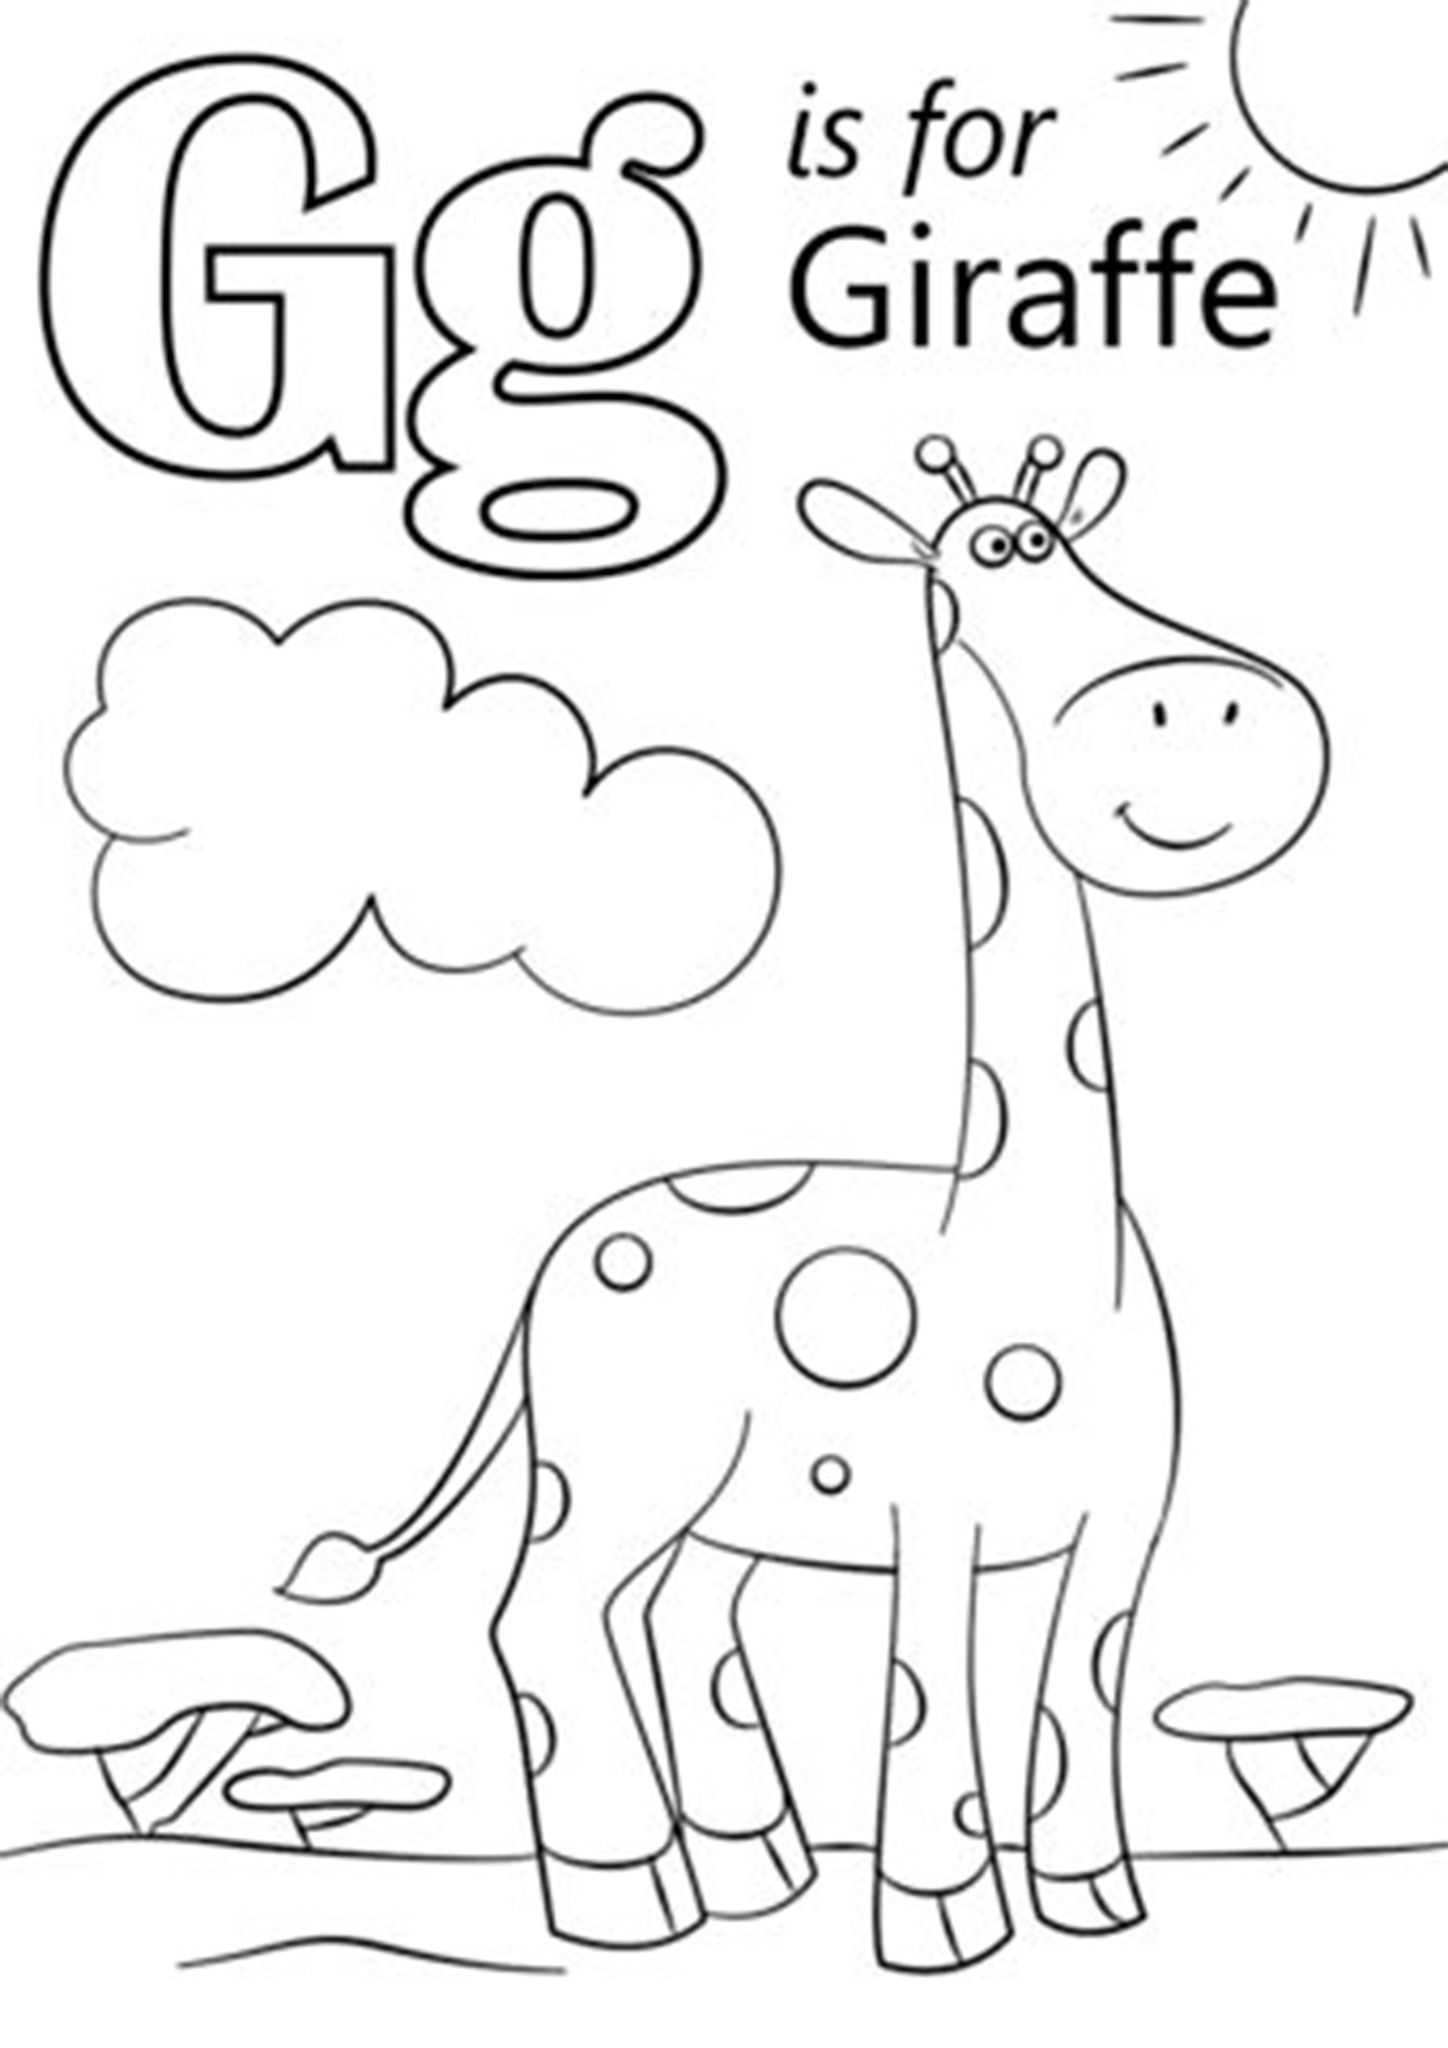 Free Easy To Print Giraffe Coloring Pages Abc Coloring Pages Giraffe Coloring Pages Preschool Coloring Pages